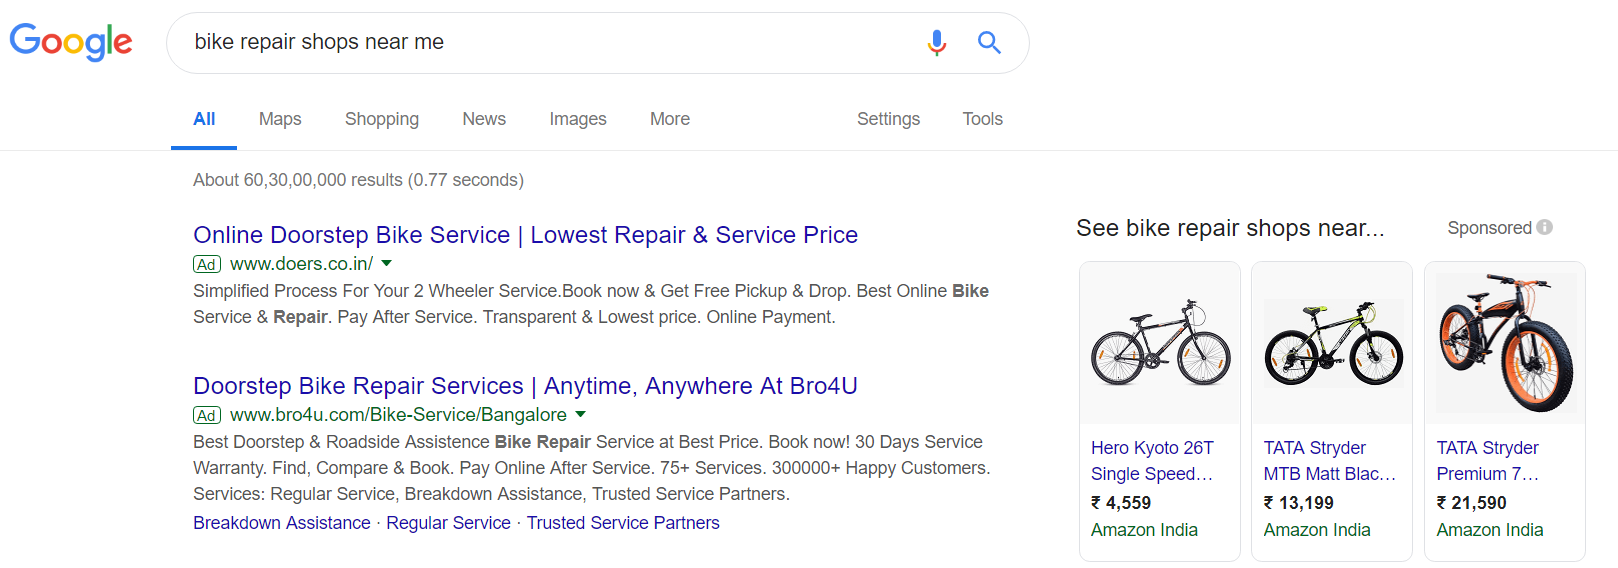 Google Search Advertising for bike servicing shops